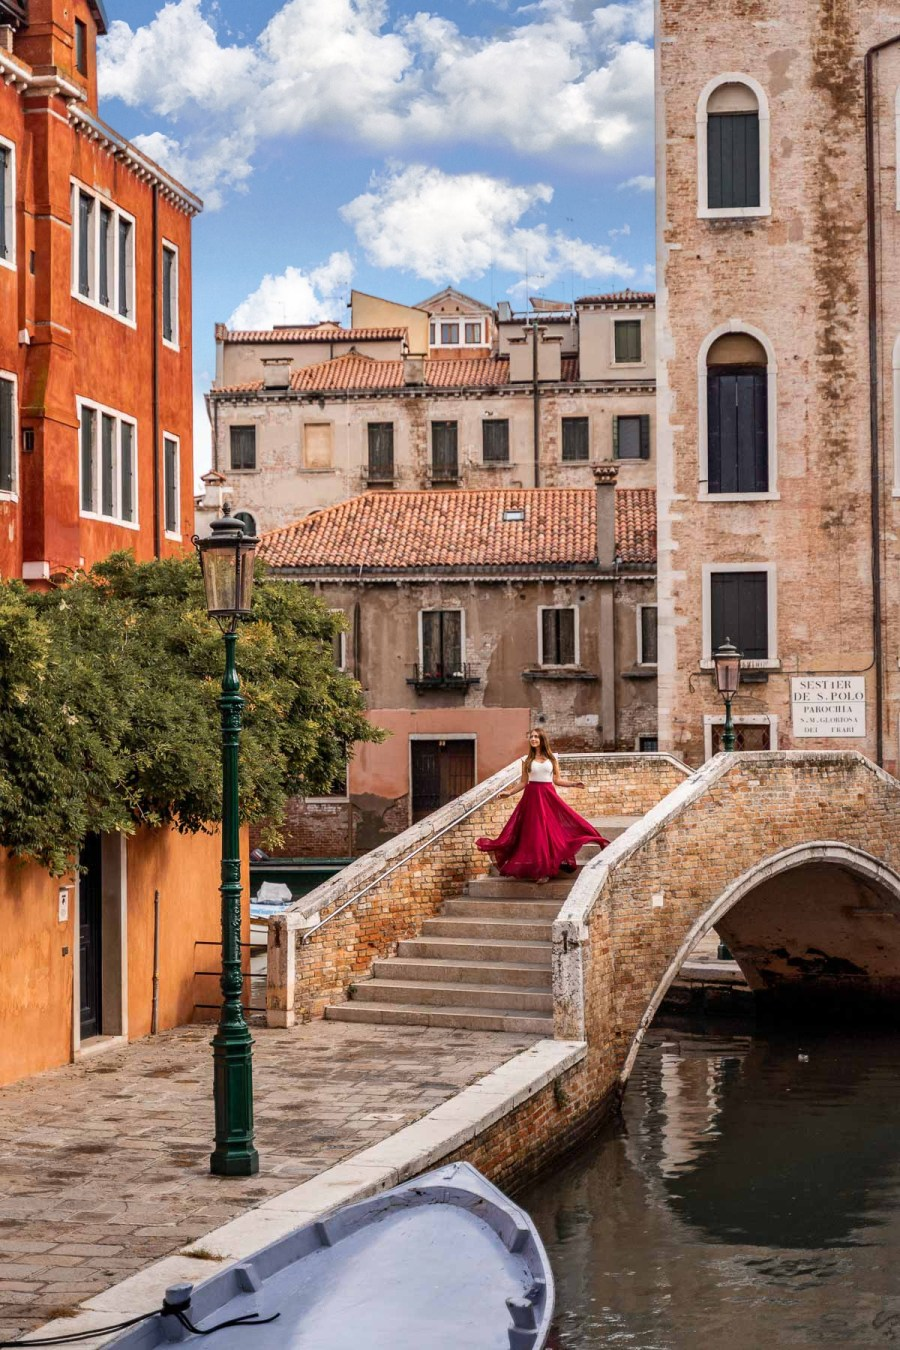 Girl in a red skirt twirling on a bridge in front of Campo San Boldo in Venice, Italy